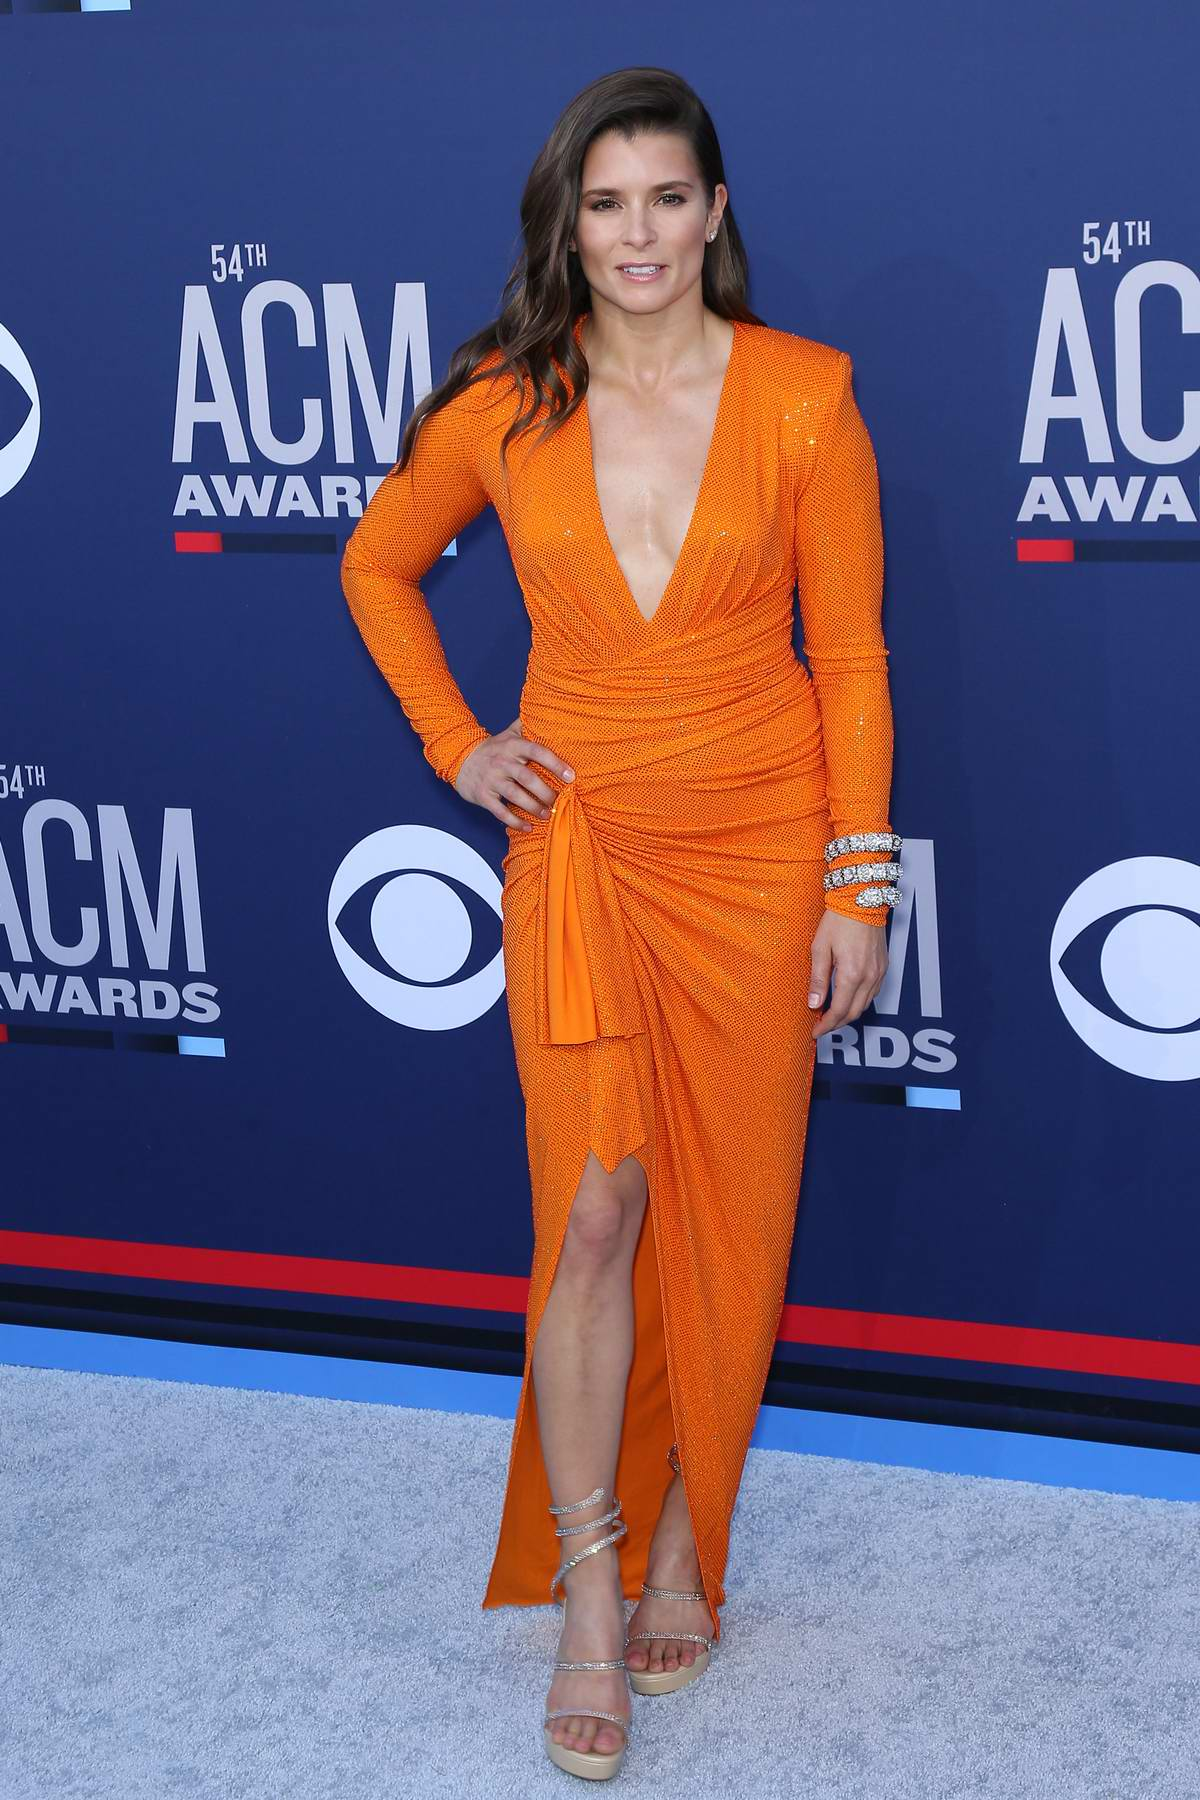 Danica Patrick attends the 54th Academy of Country Music Awards (ACM 2019) at MGM Grand in Las Vegas, Nevada